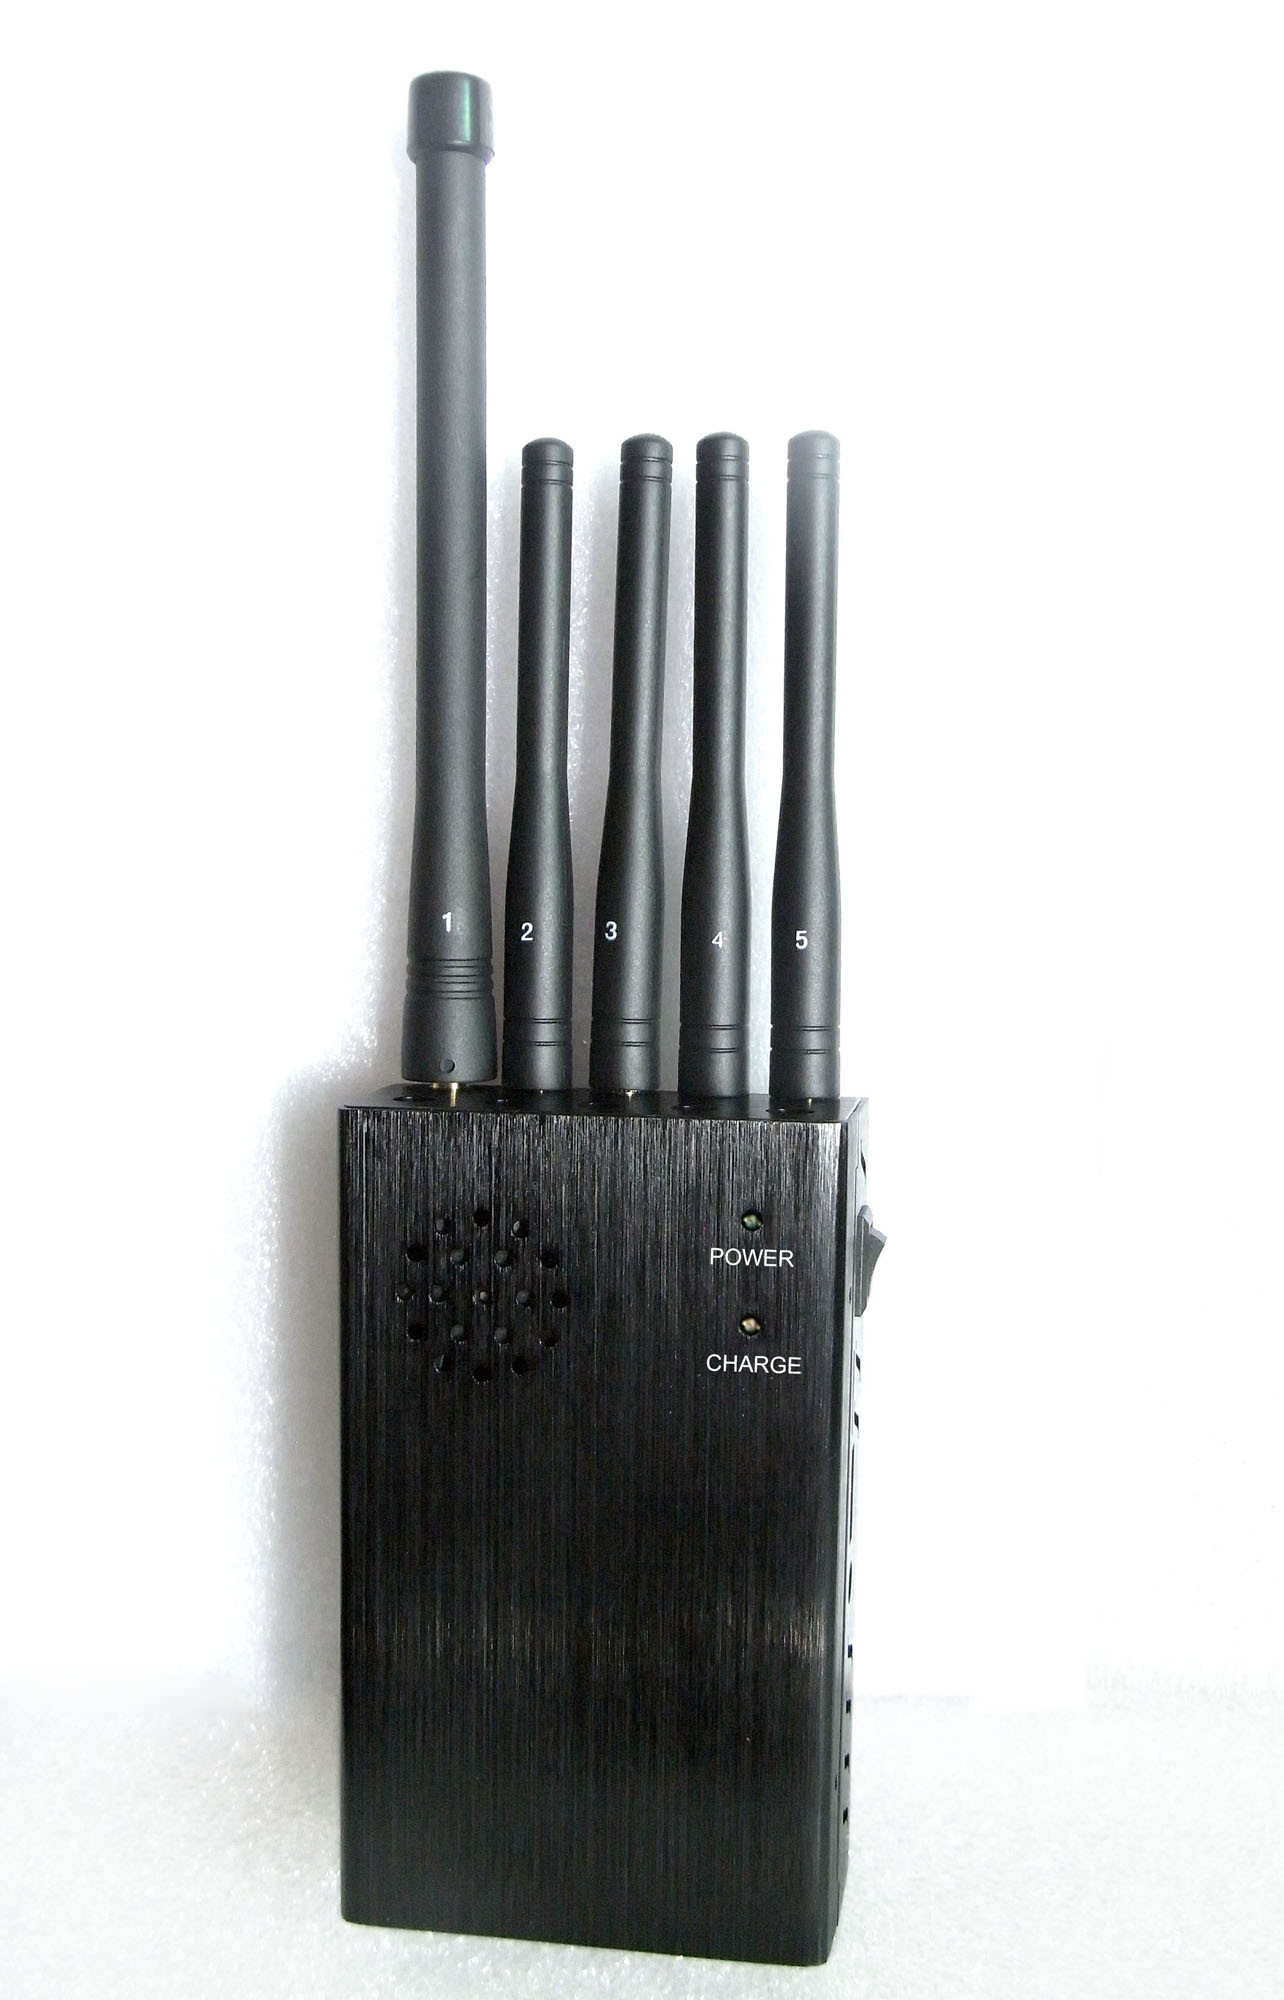 phone frequency jammer tools - China New Handheld 5 Bands 4G Lte 4G Wimax Cell Phone Jammer 4G Jammer 3G Jammer, 5 Antennas Phone Jammer for GSM, CDMA, 3G, 4glte - China 5 Band Signal Blockers, Five Antennas Jammers